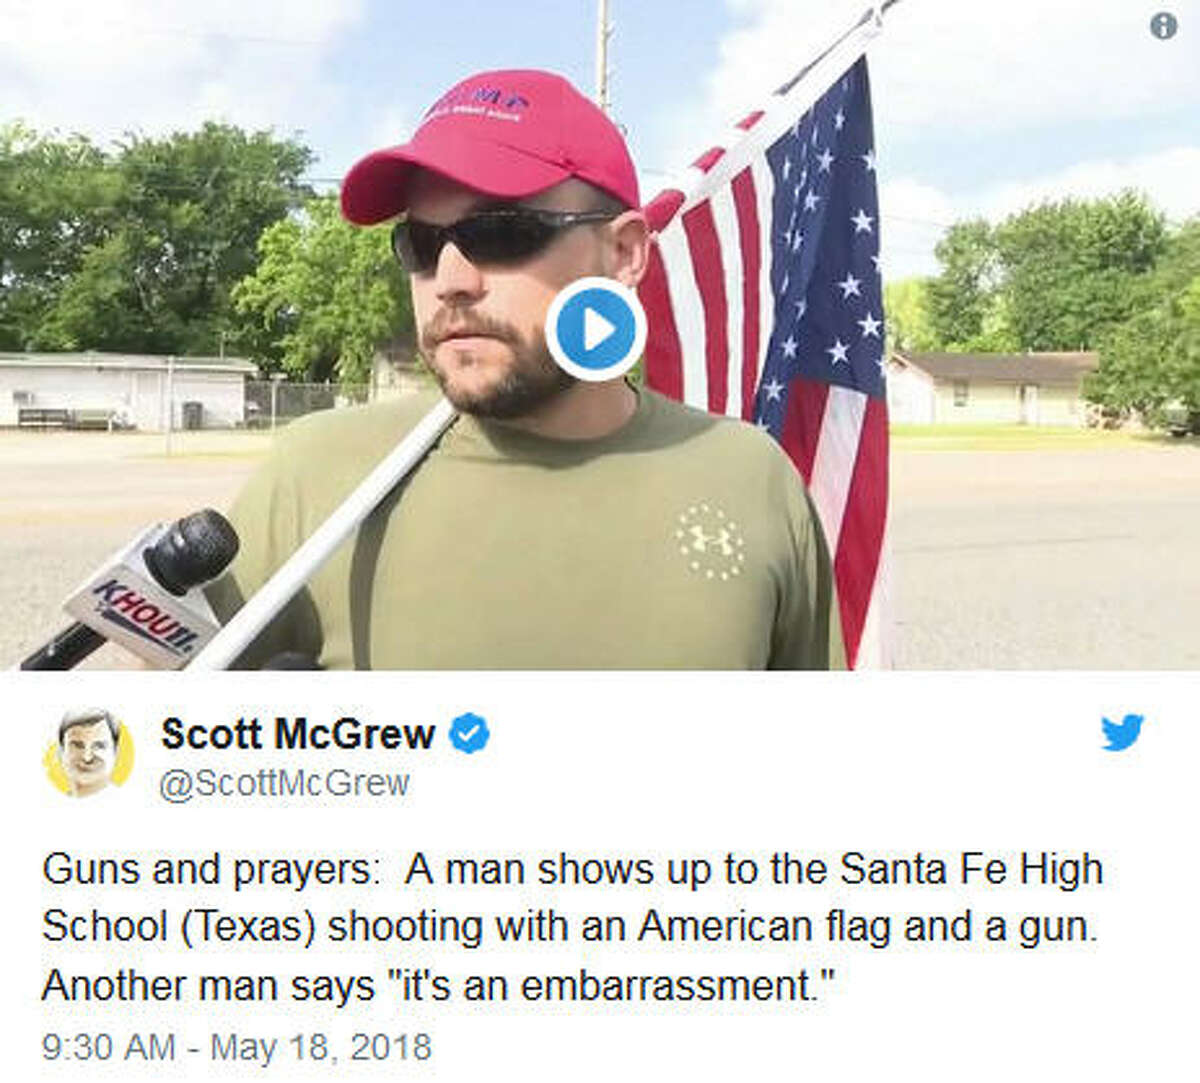 On Friday morning reporters from KHOU-TV spoke to a man near the scene of a deadly school shooting at Santa Fe High School, south of Houston, who arrived with a message. The man, wearing an army green T-shirt, also appeared to be open-carrying a handgun on his hip when he walked away from the news crews.